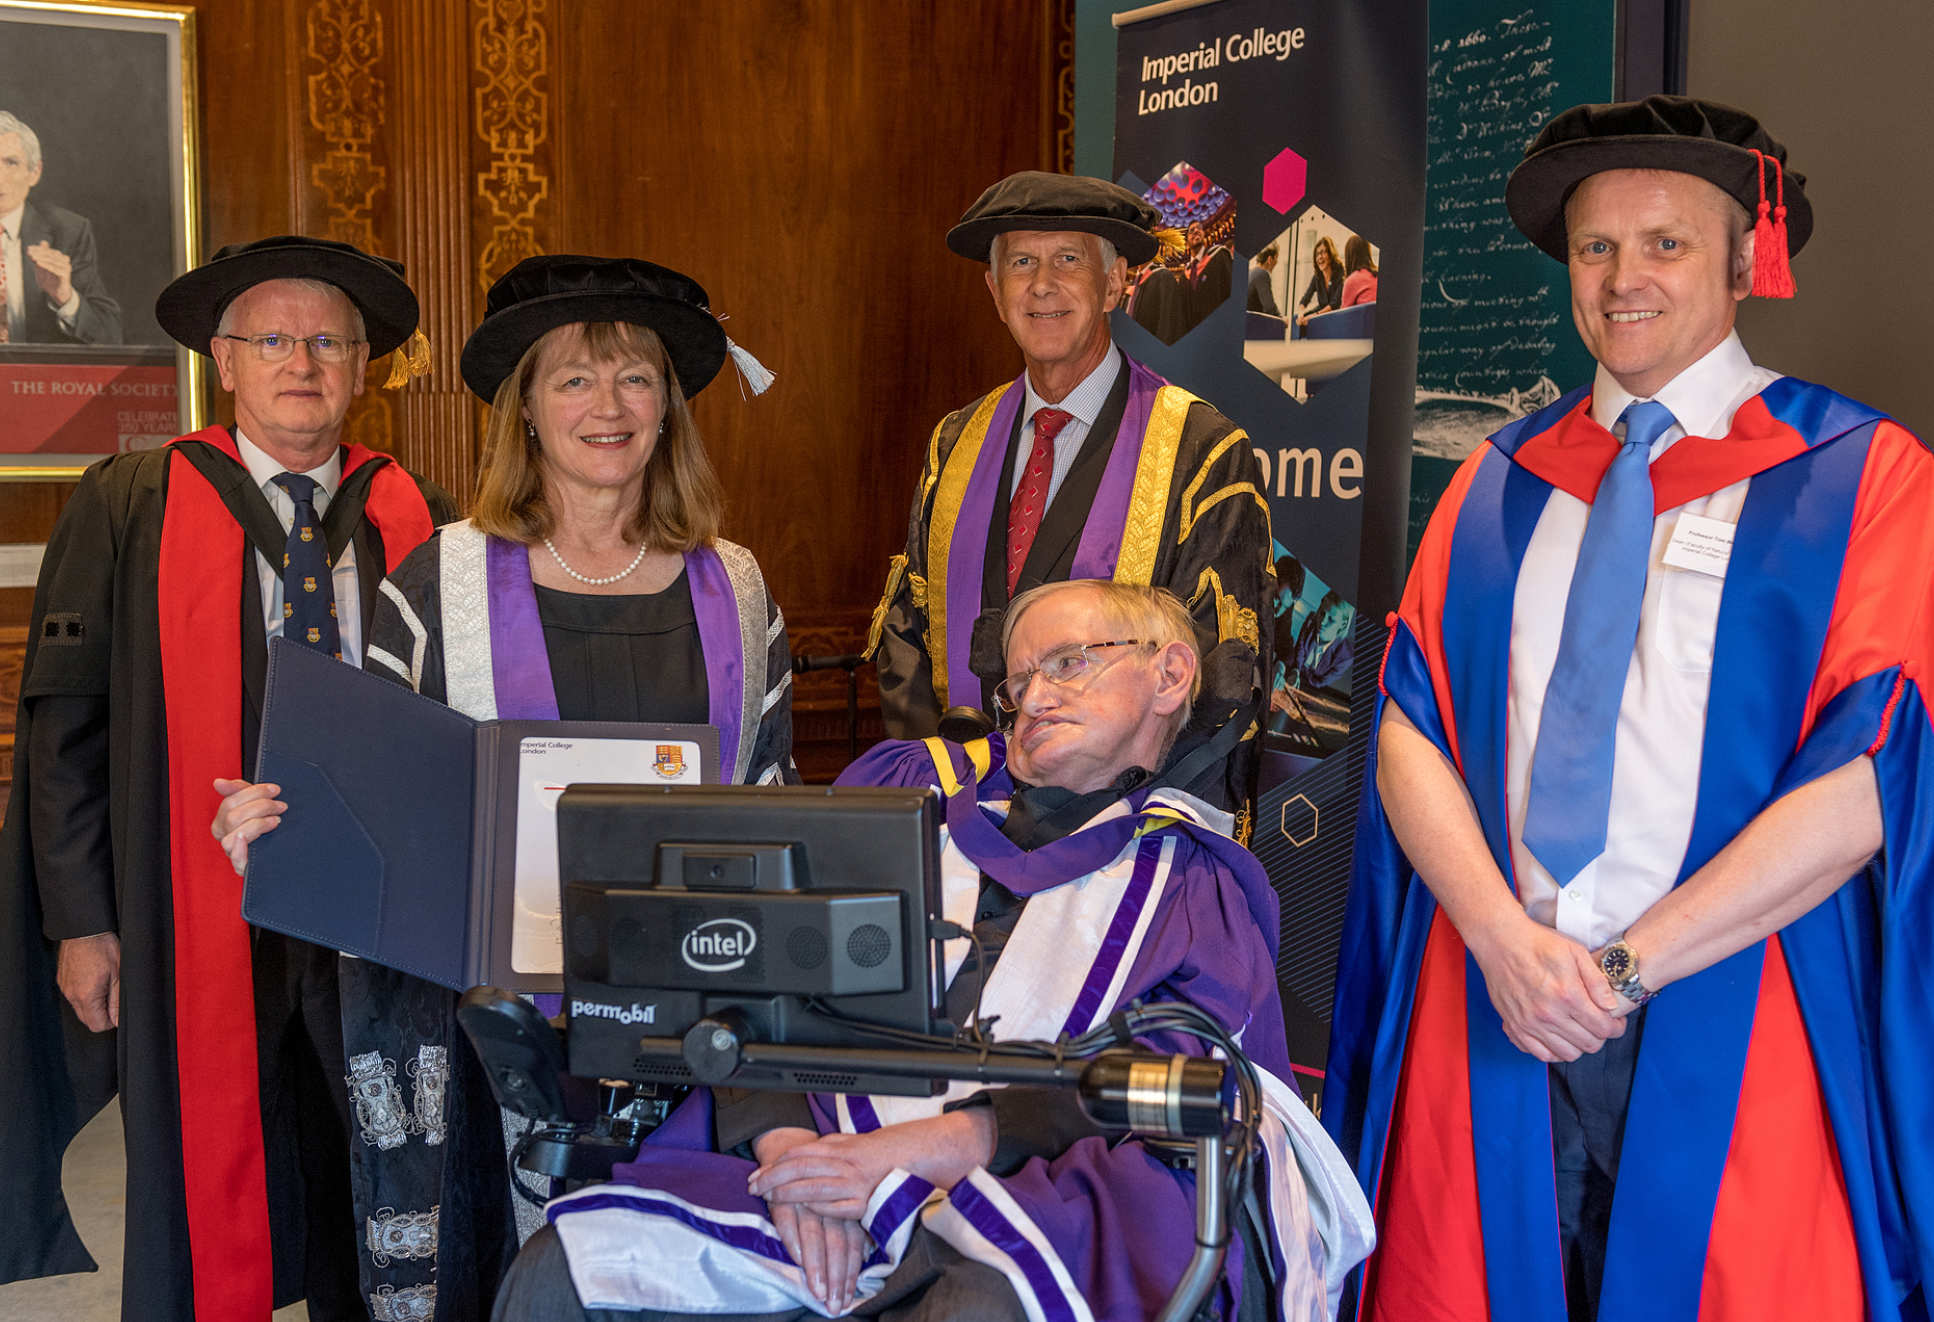 Stephen Hawking in robes in with Imperial dignitaries